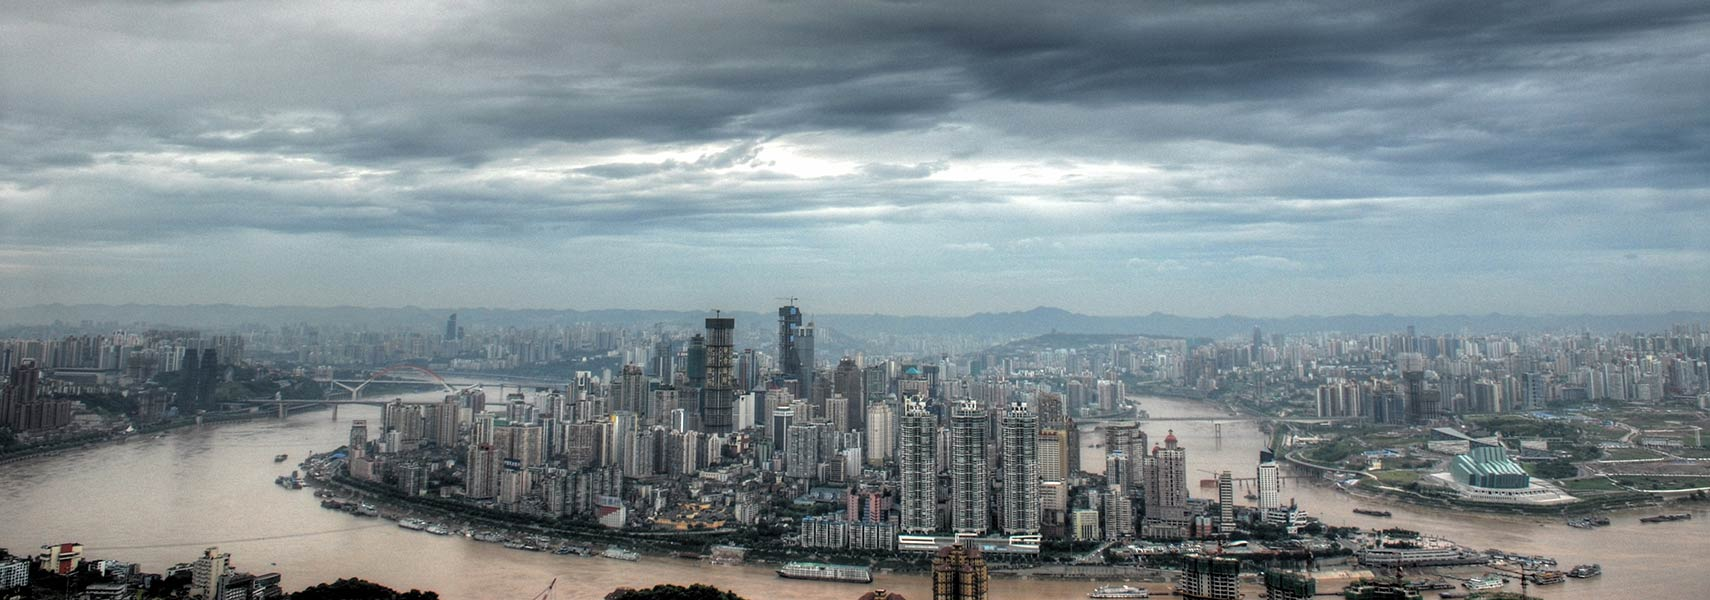 Skyline of Chongqing, China